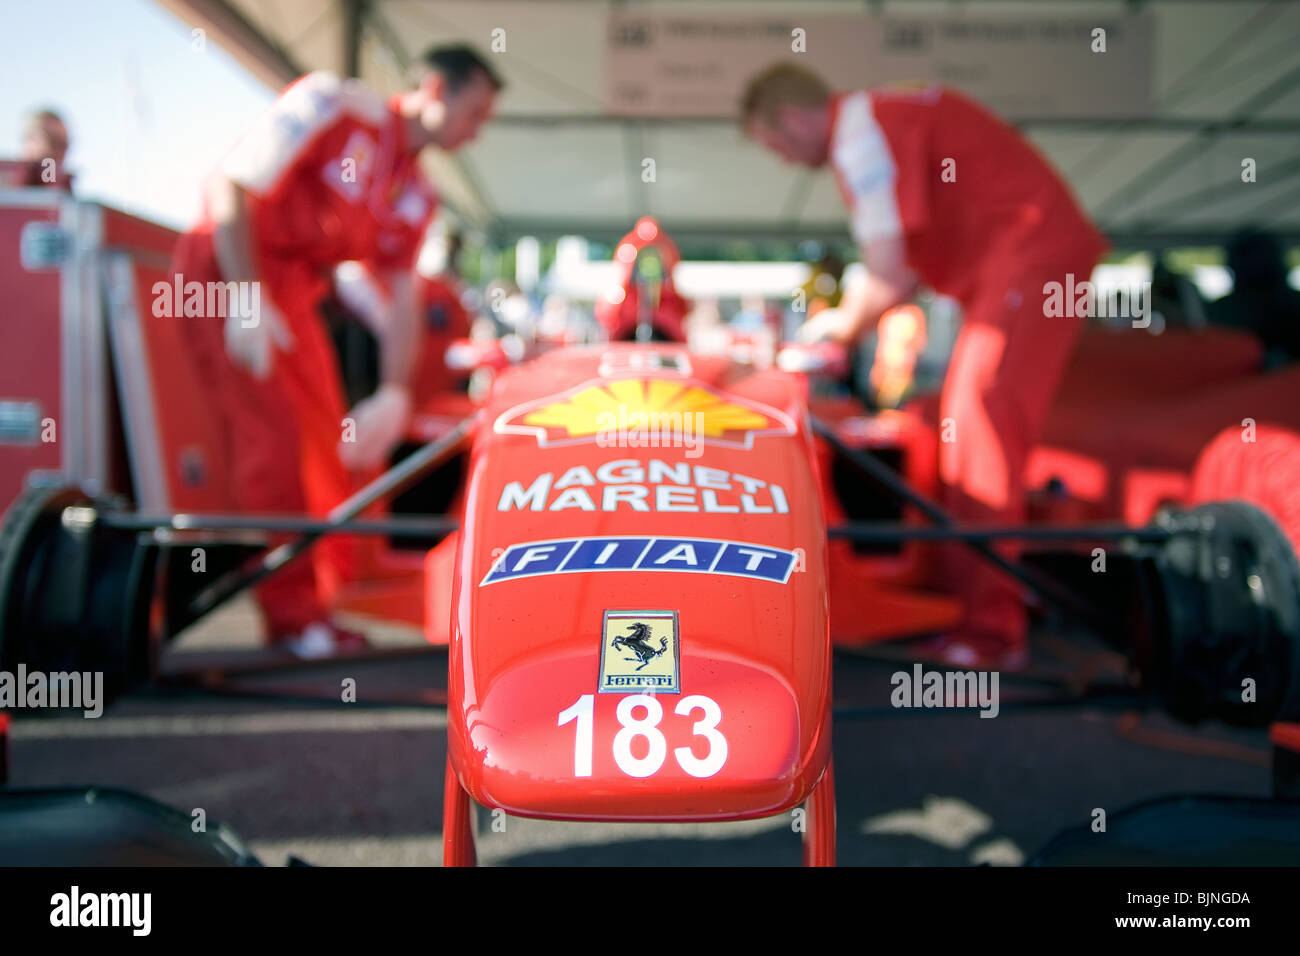 Ferrari mechanics working on a Ferrari F1 car. - Stock Image